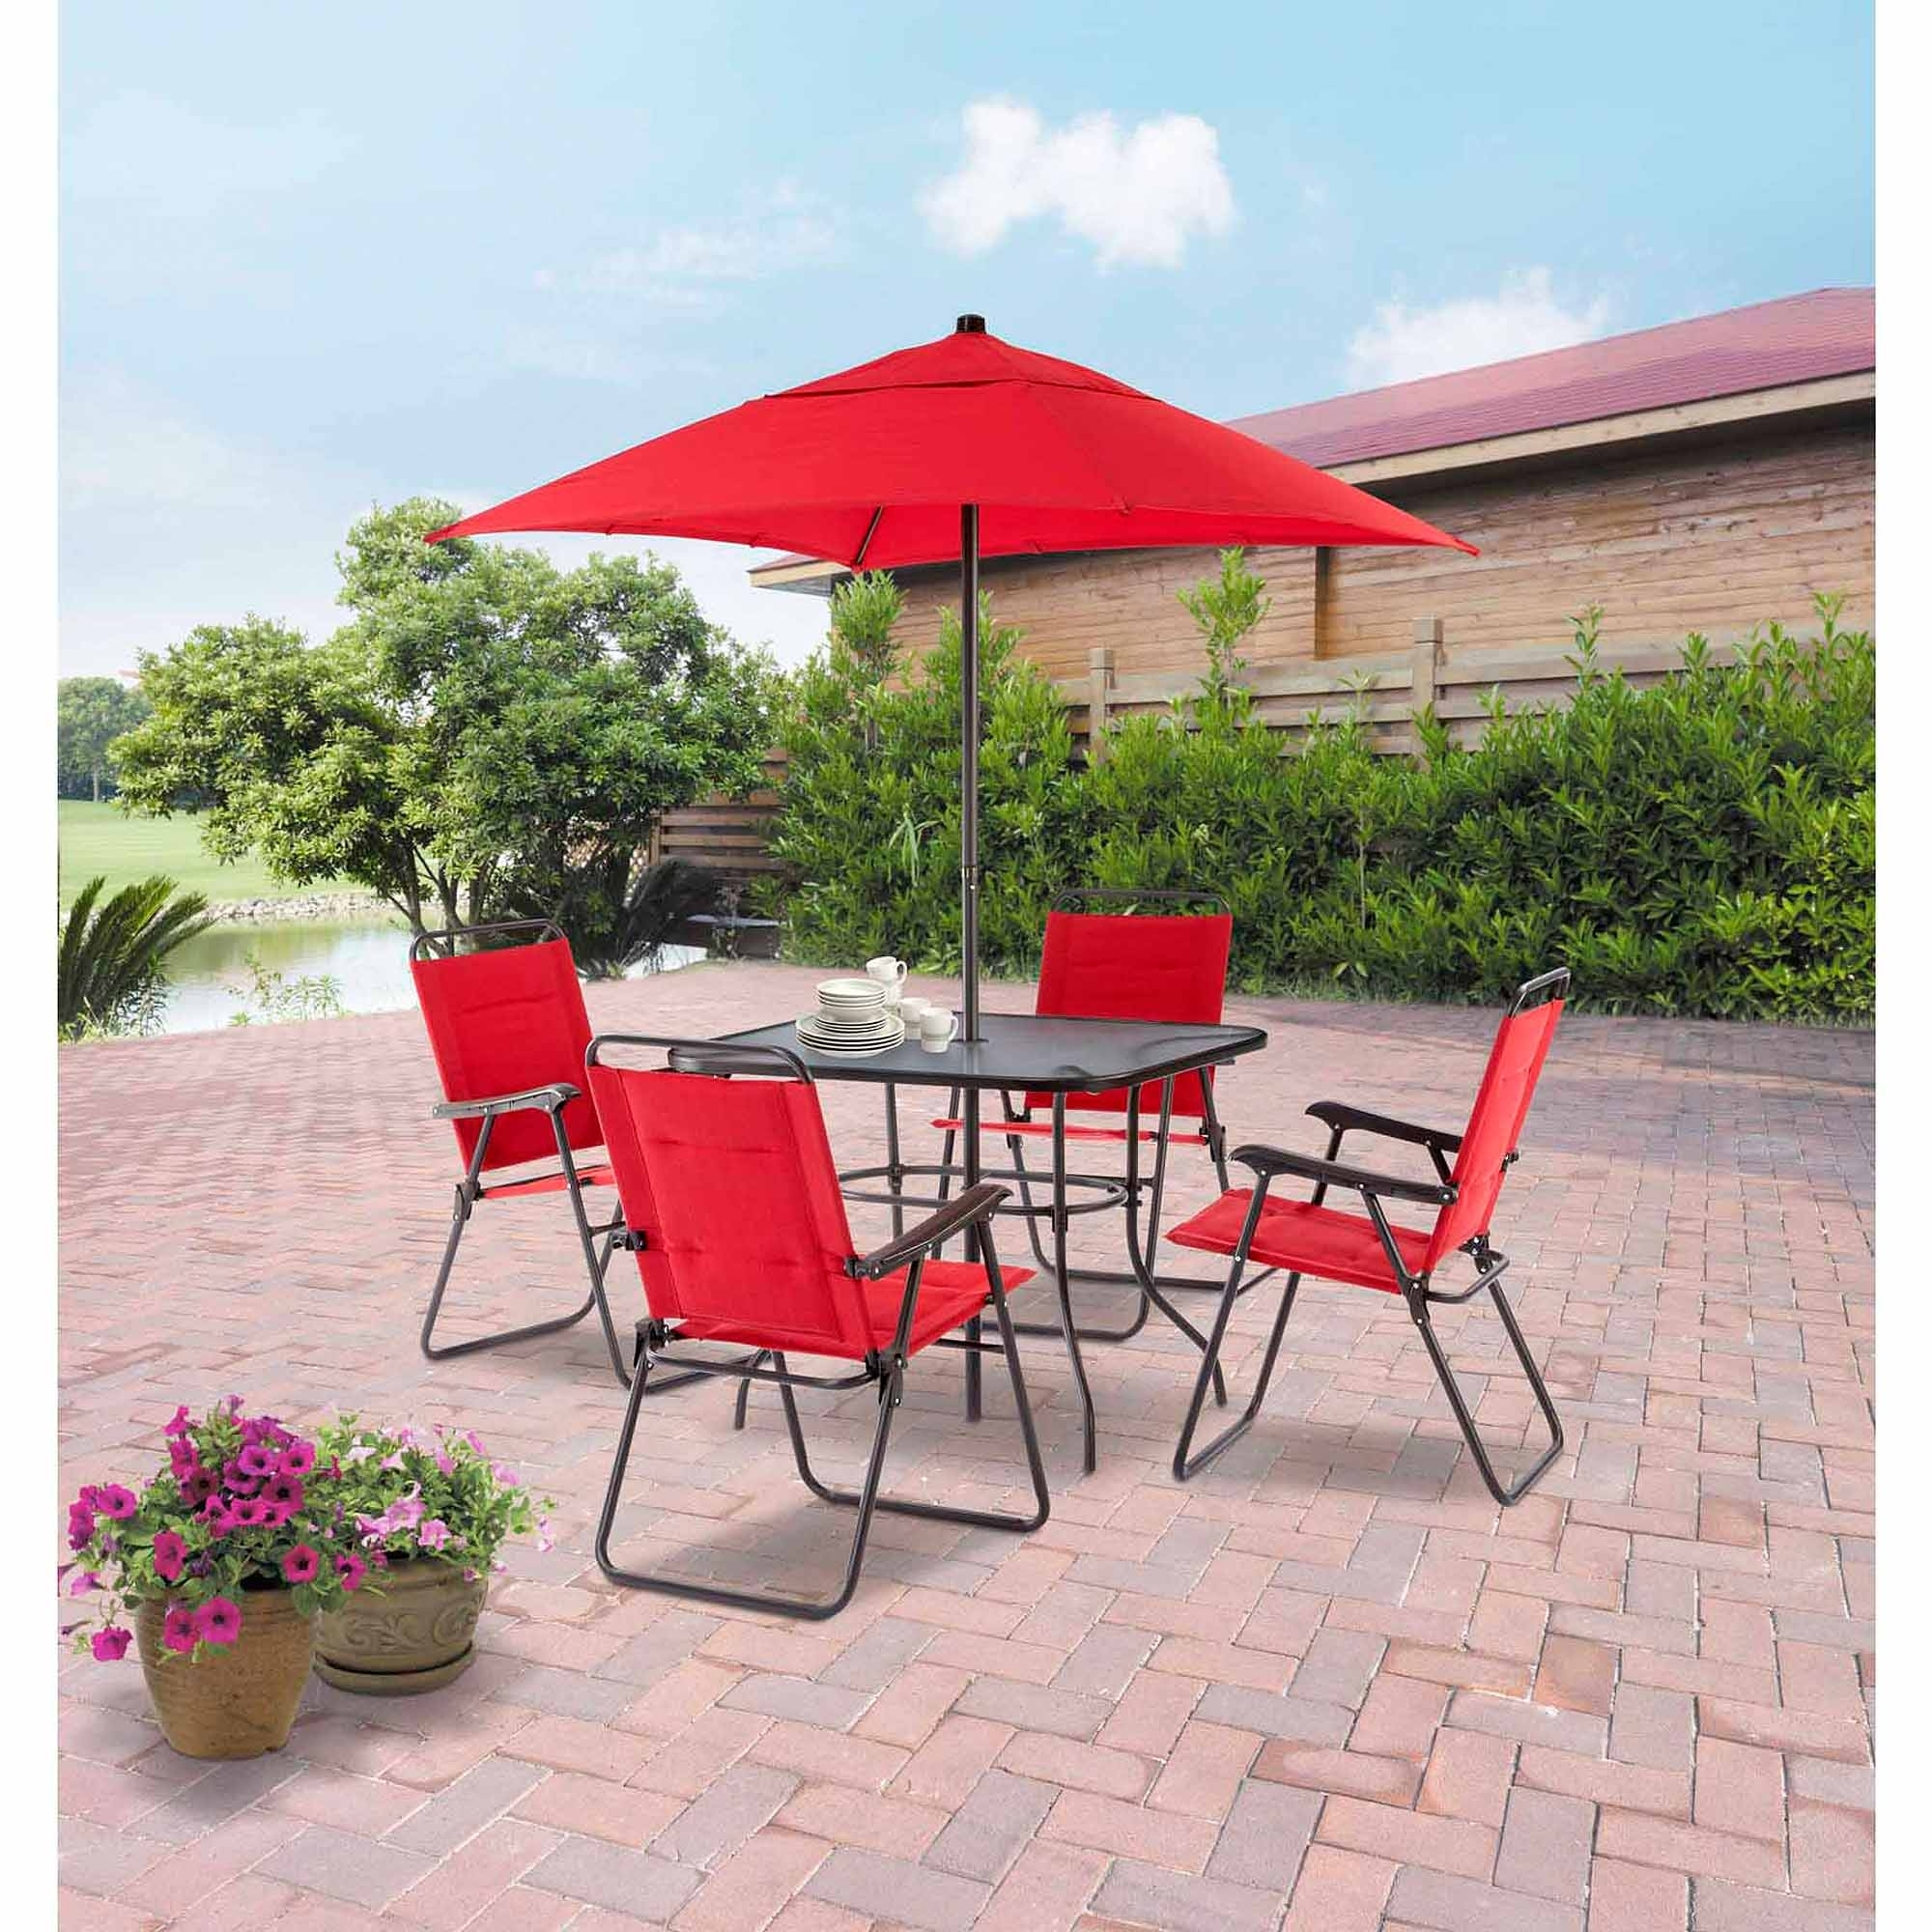 Most Recent Sunbrella Patio Umbrellas At Walmart Regarding Decorating: Lovely Kmart Patio Cushions For Comfortable Furniture (View 8 of 20)